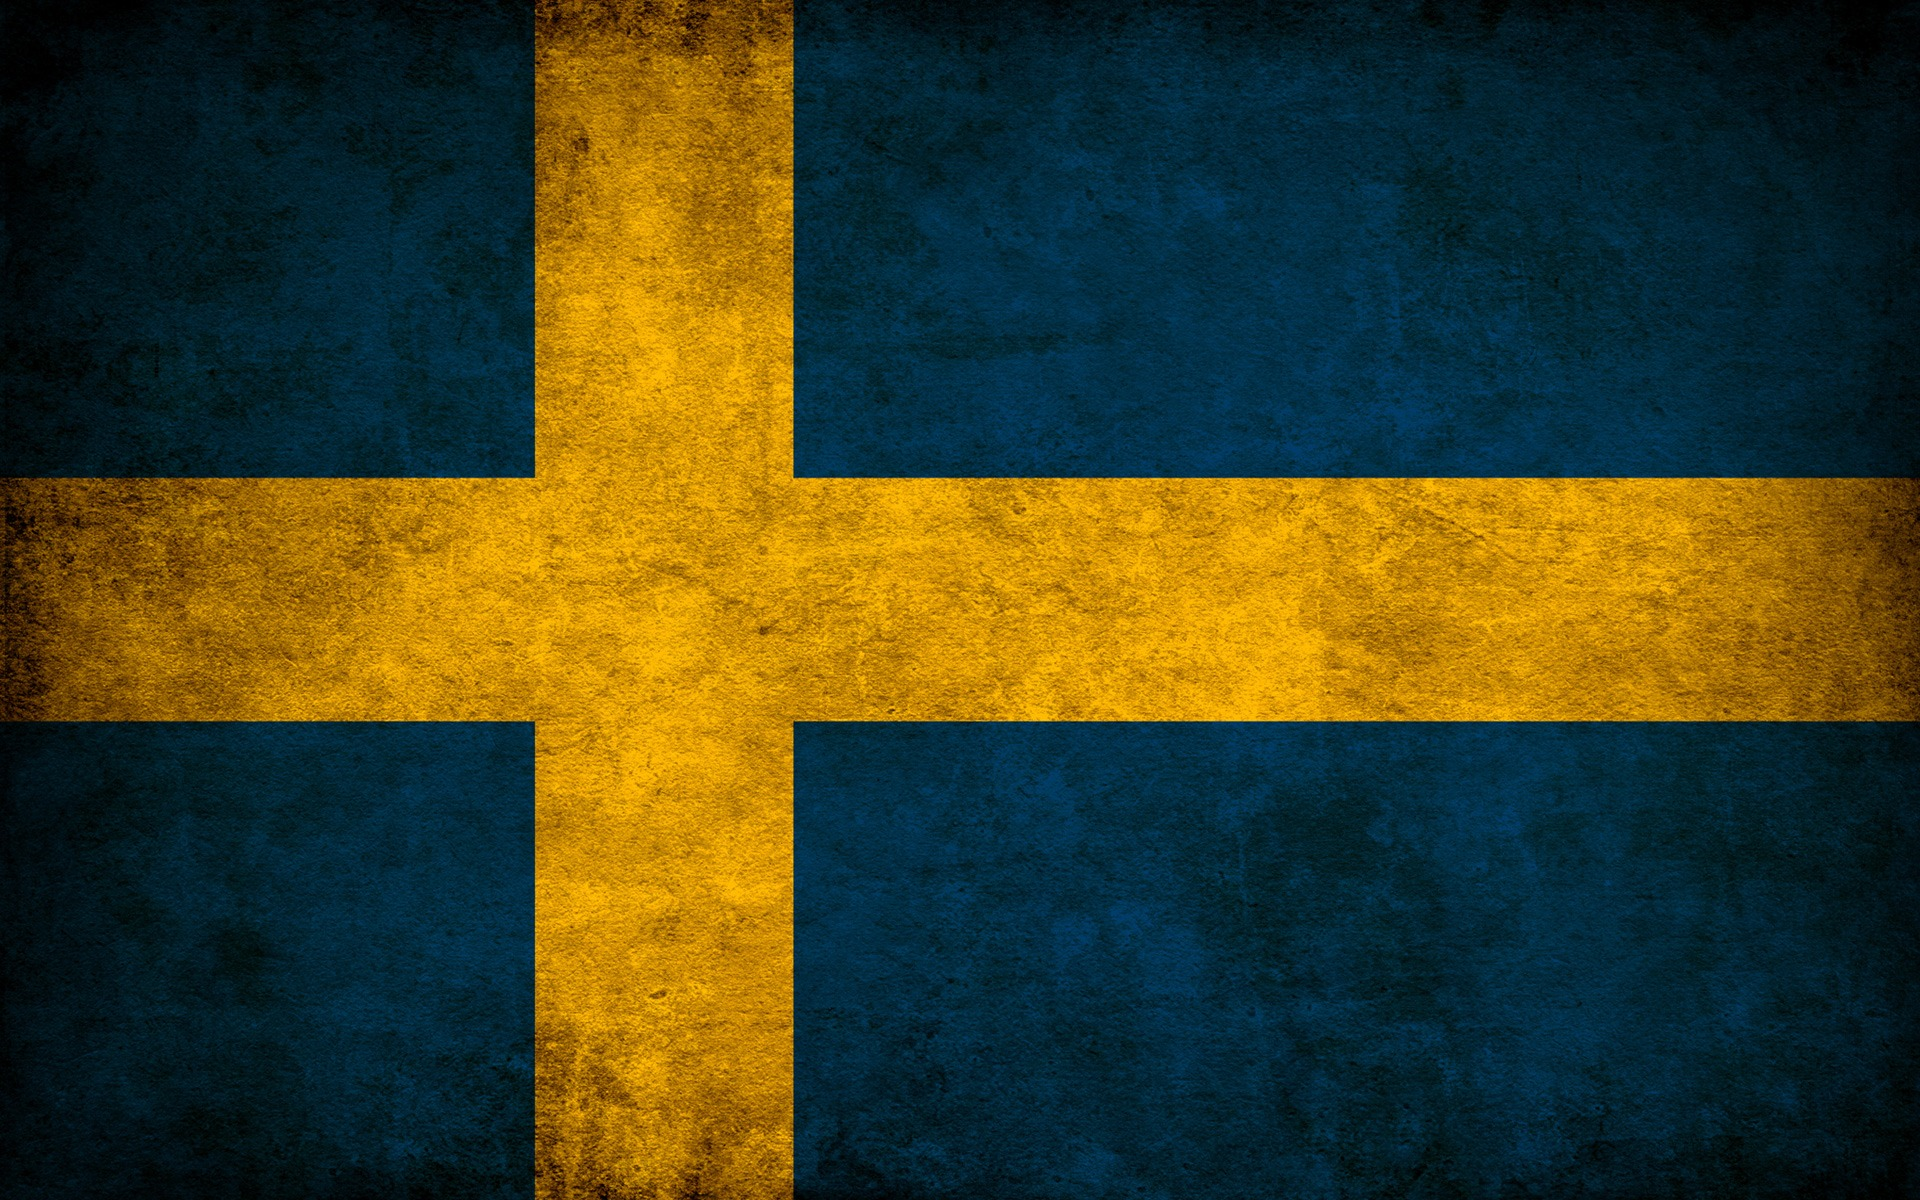 10 Facts About Sweden